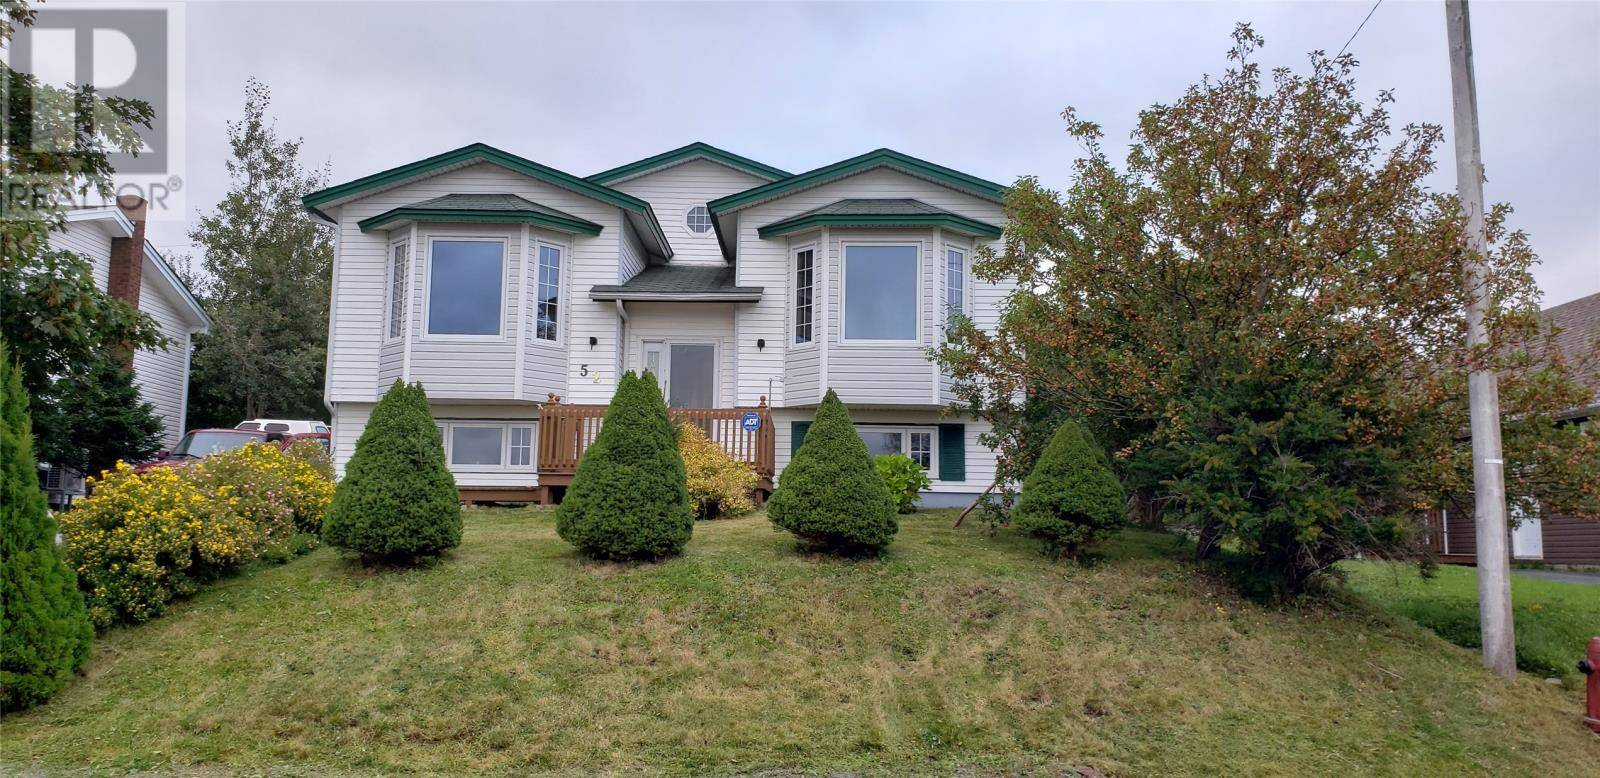 House for sale at 52 Green Hill Cres Burin Newfoundland - MLS: 1203061